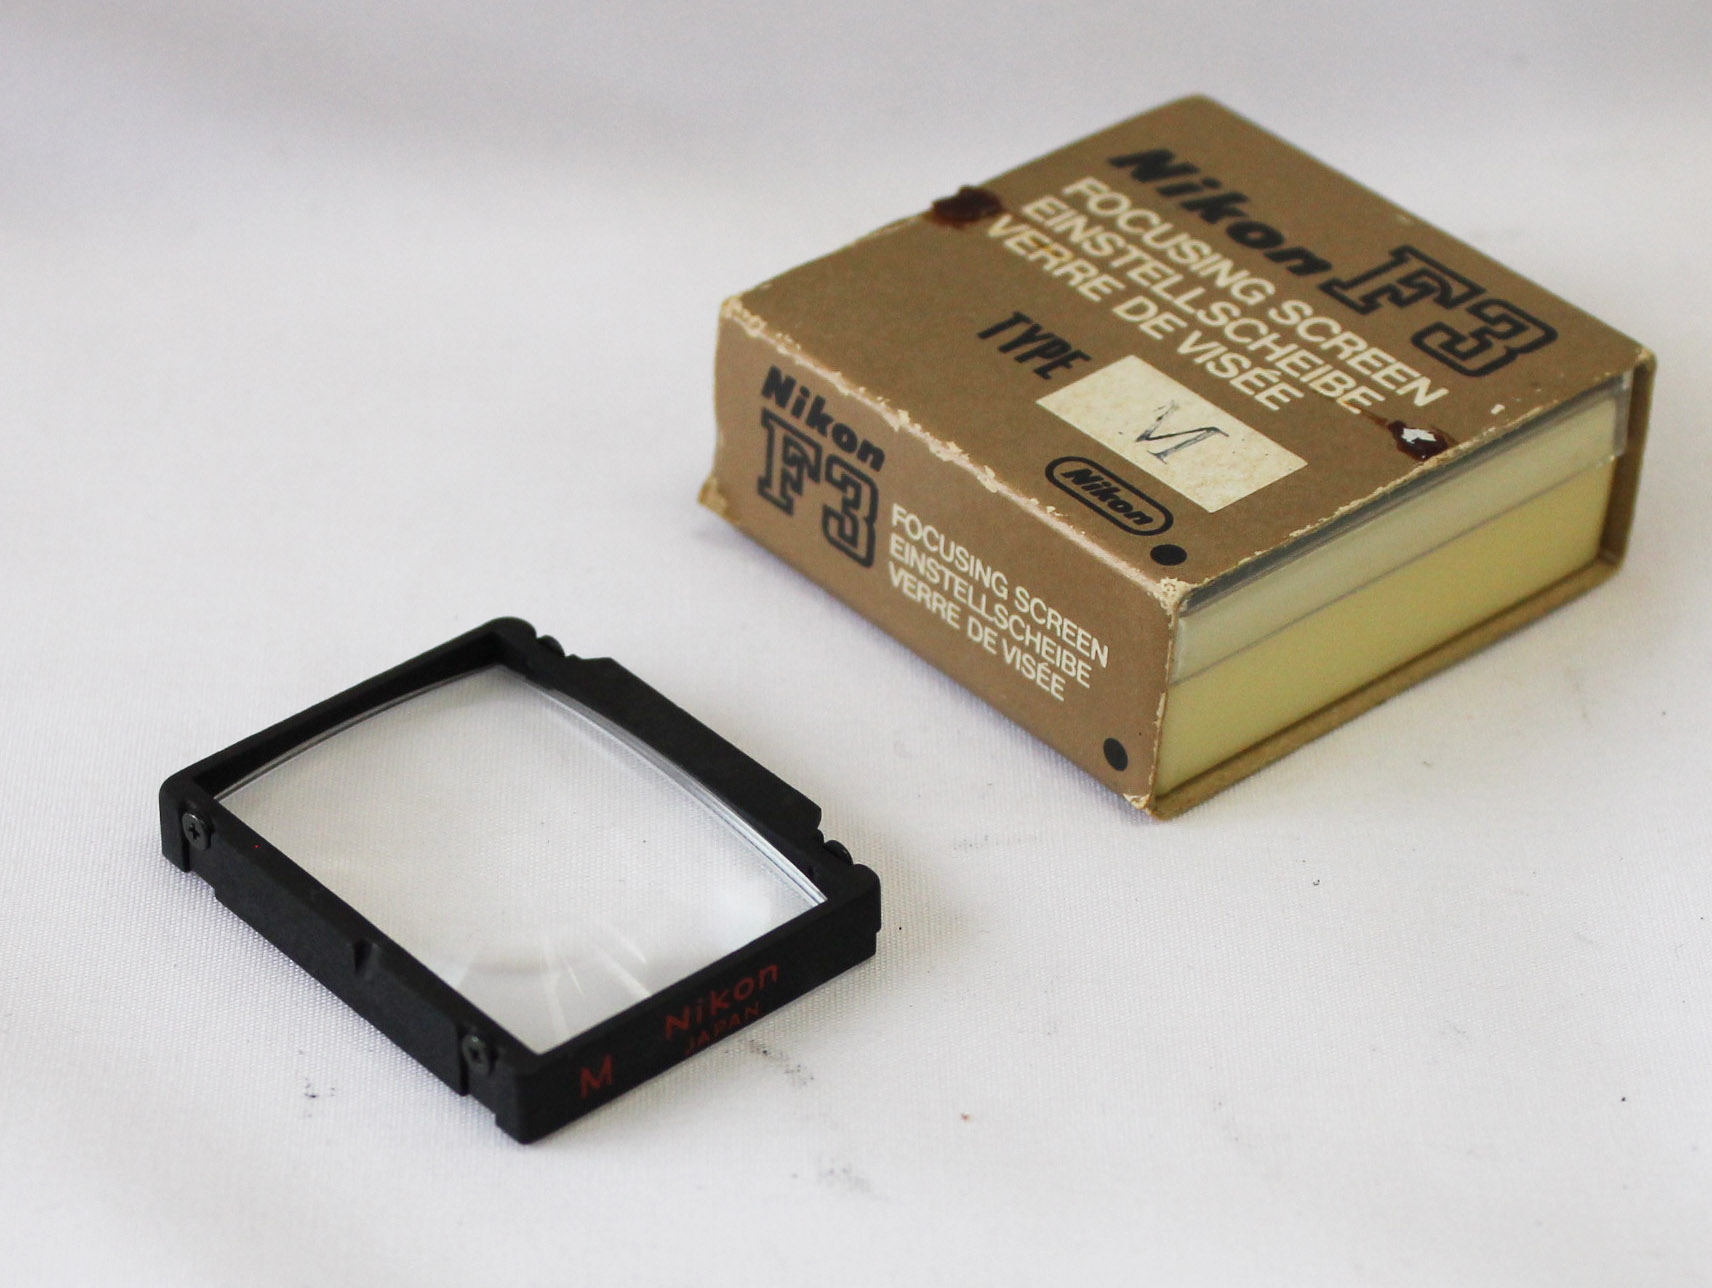 Japan Used Camera Shop | Nikon F3 Focusing Screen Type M in Case/Box from Japan